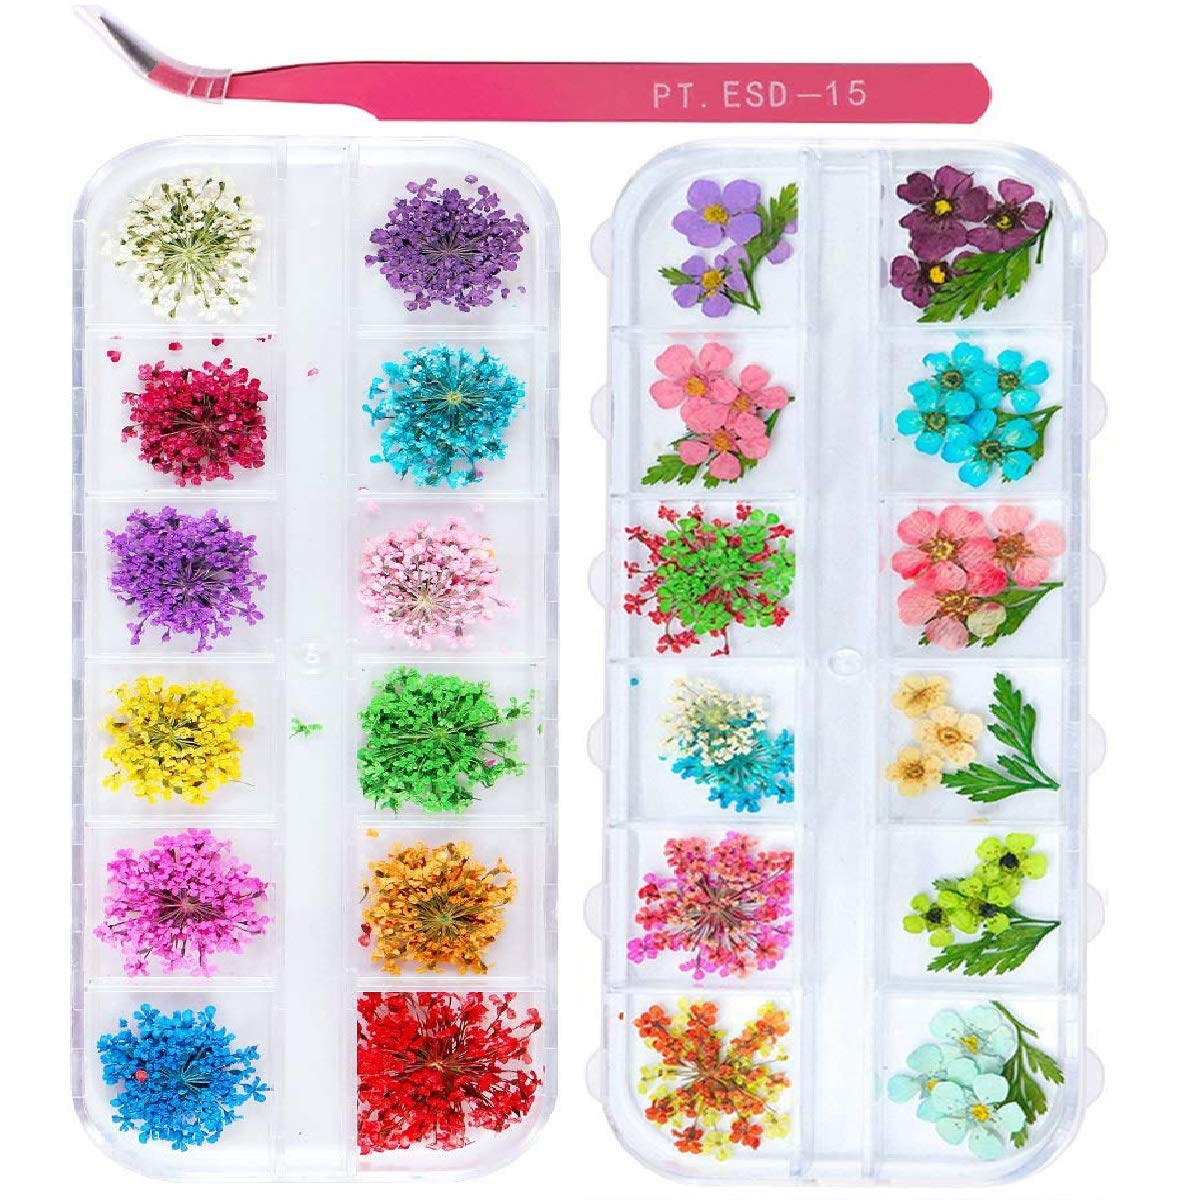 2 Boxes Nail Art Dried Flowers Dry Colors Max 46% OFF OFFicial 24 UNIME Mini